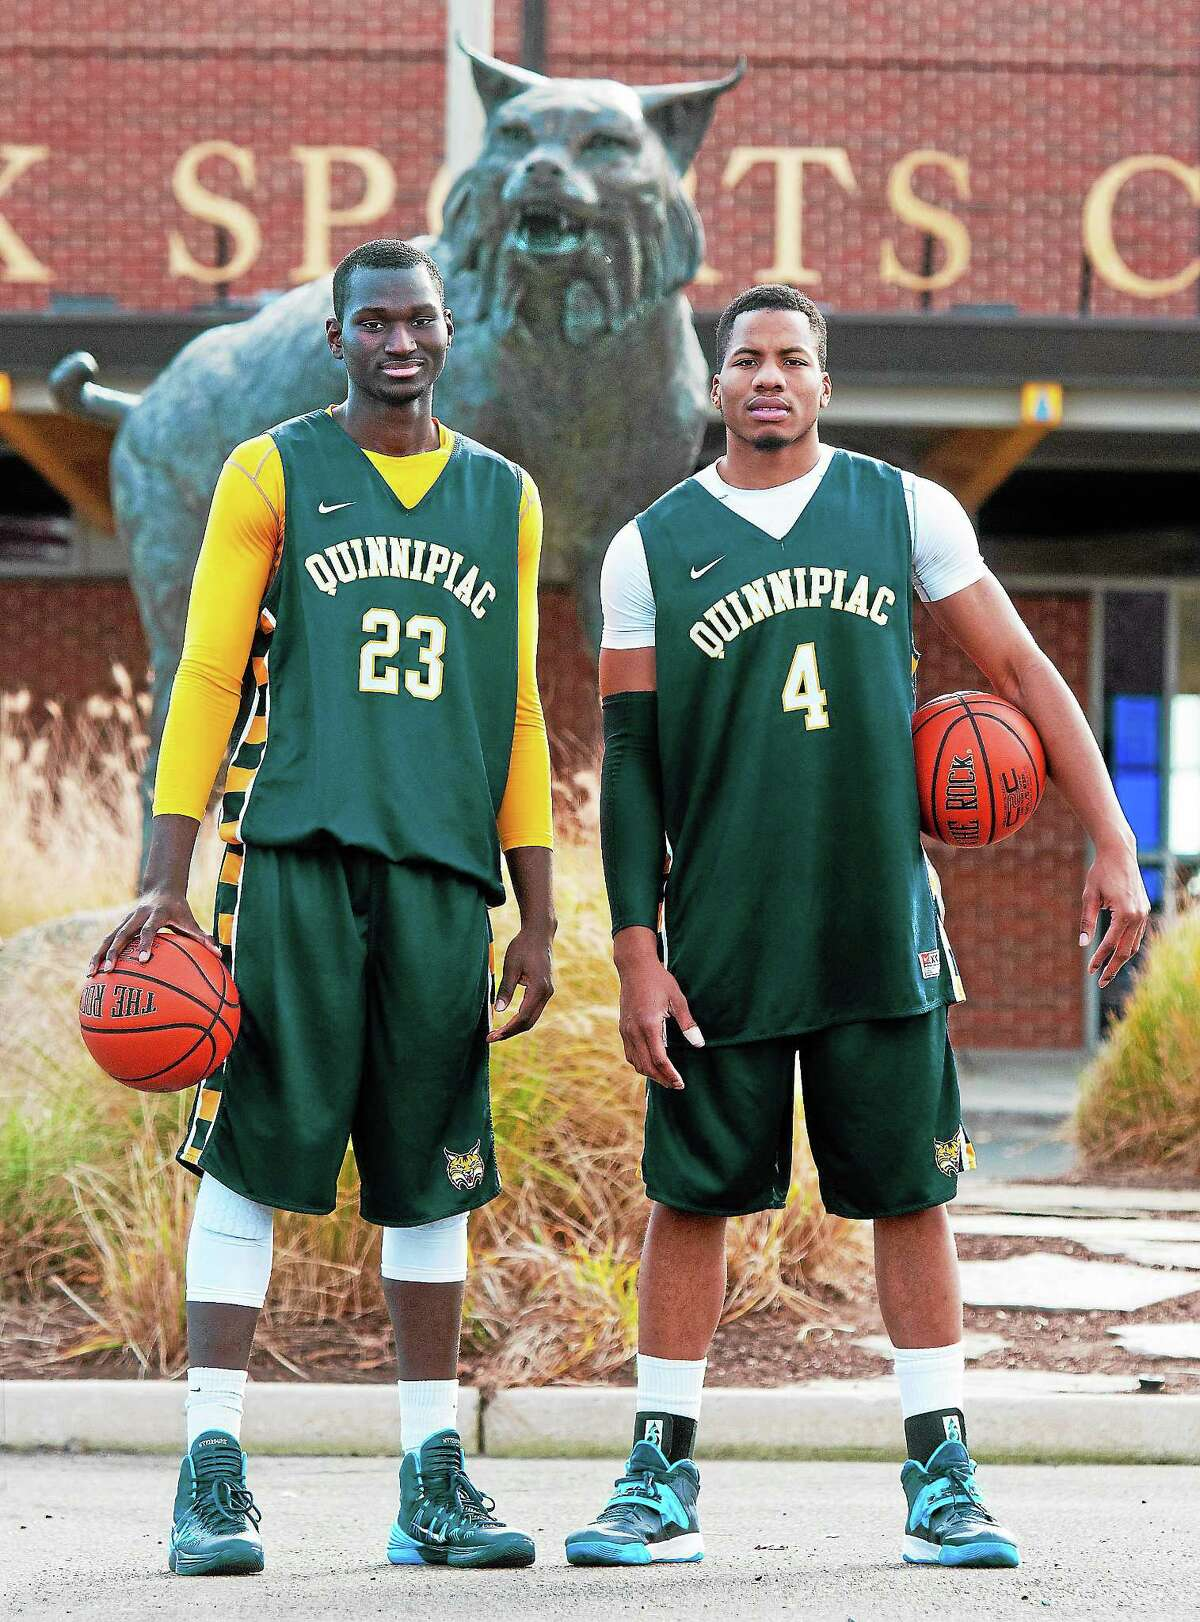 Quinnipiac men's basketball standouts Ousmane Drame (23) and Ike Azotam (4) will lead the Bobcats into their first season as members of the Metro Atlantic Athletic Conference.